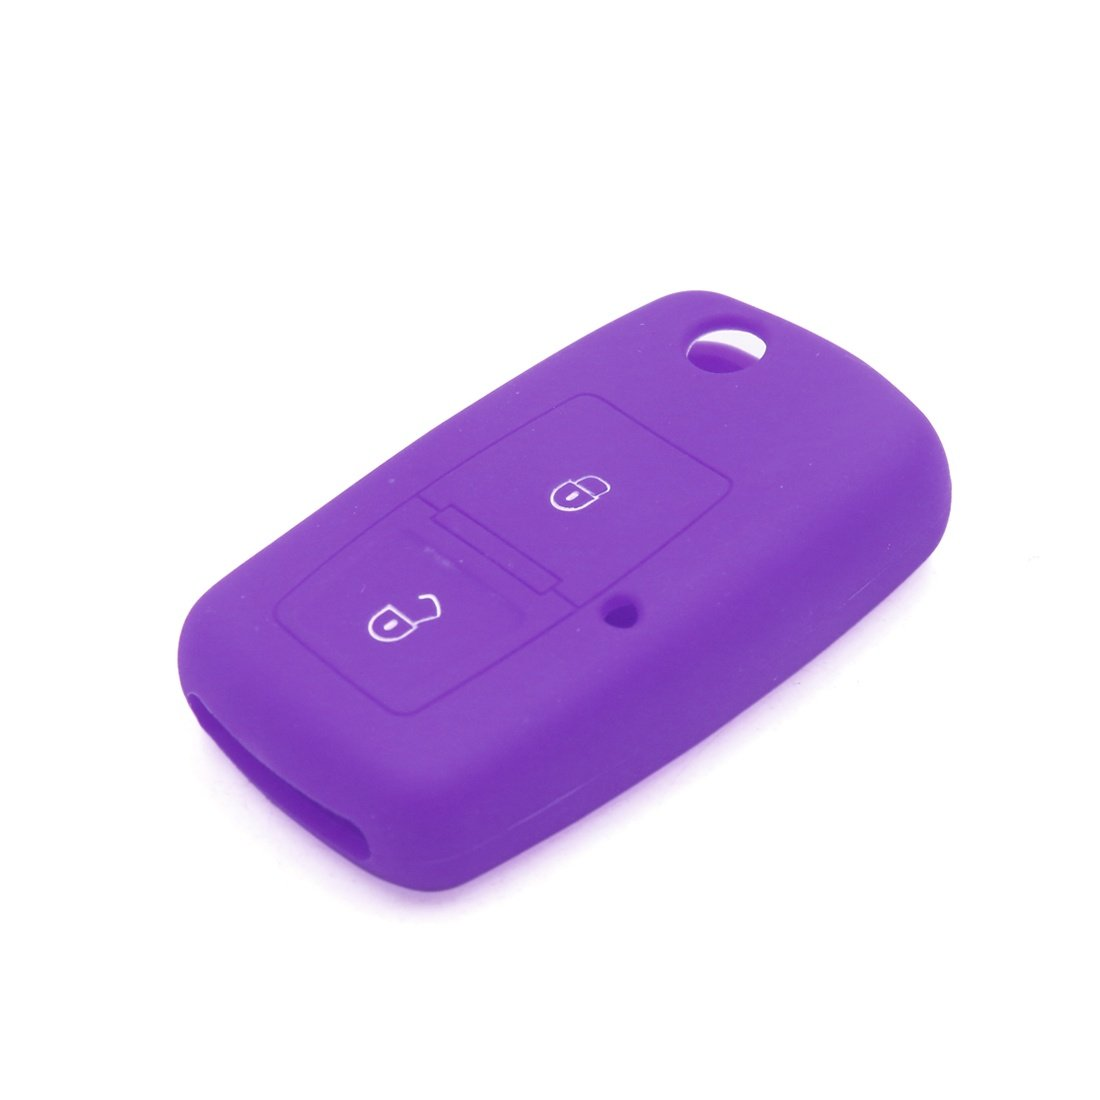 Uxcell a17071500ux0230 Remote Key Case